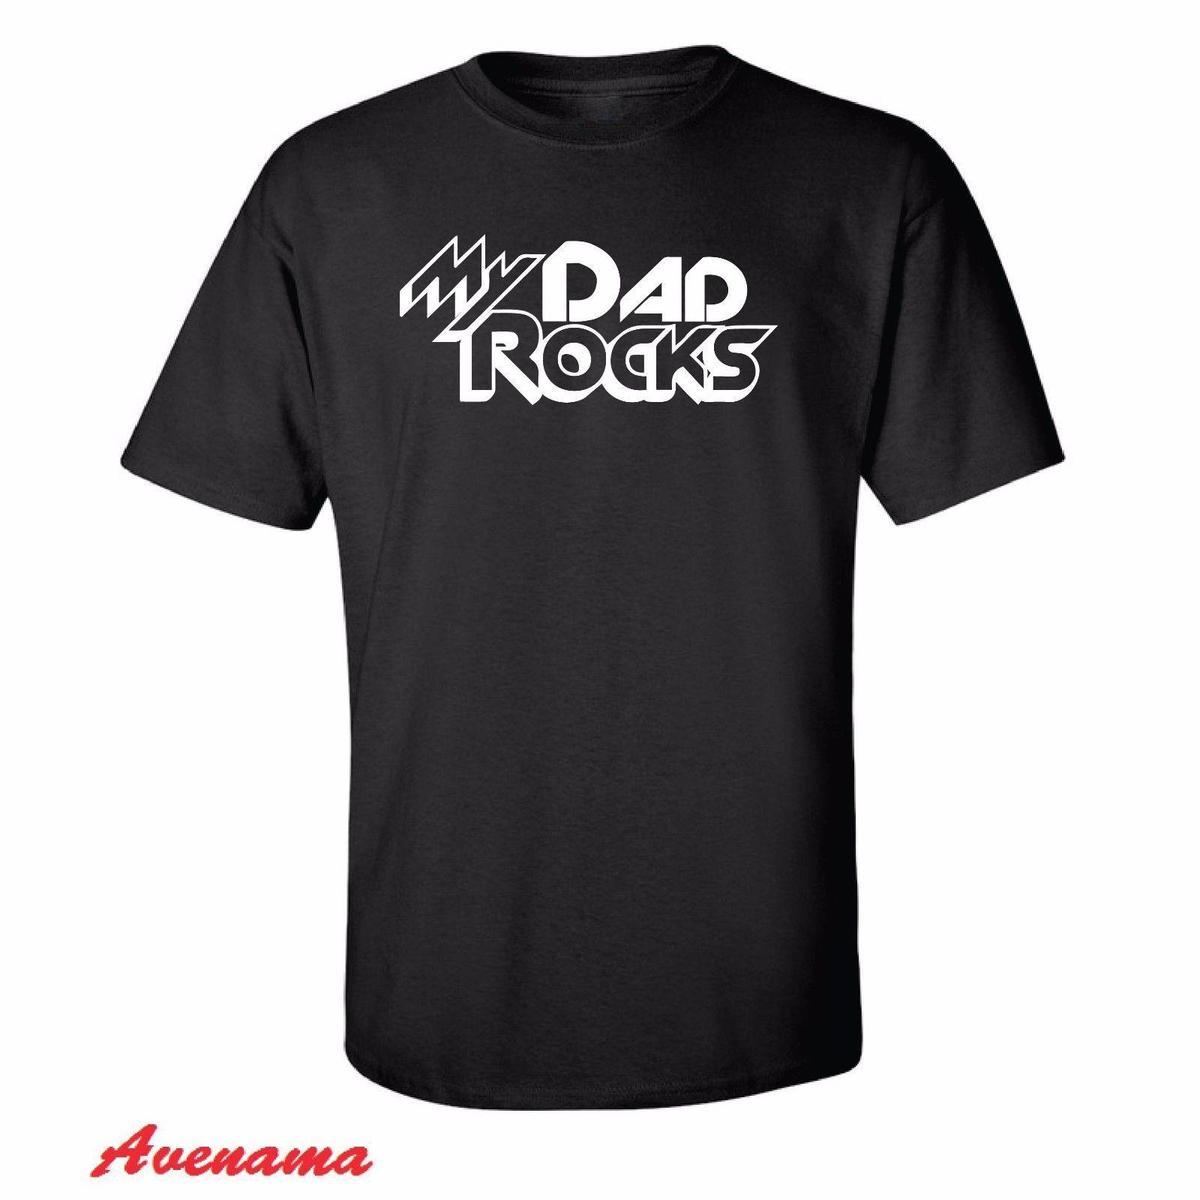 My Dad Rocks T SHIRT Birthday Gift For Him Daddy Husband Funny Shop Shirts Online Shirt From Amesion94 1208